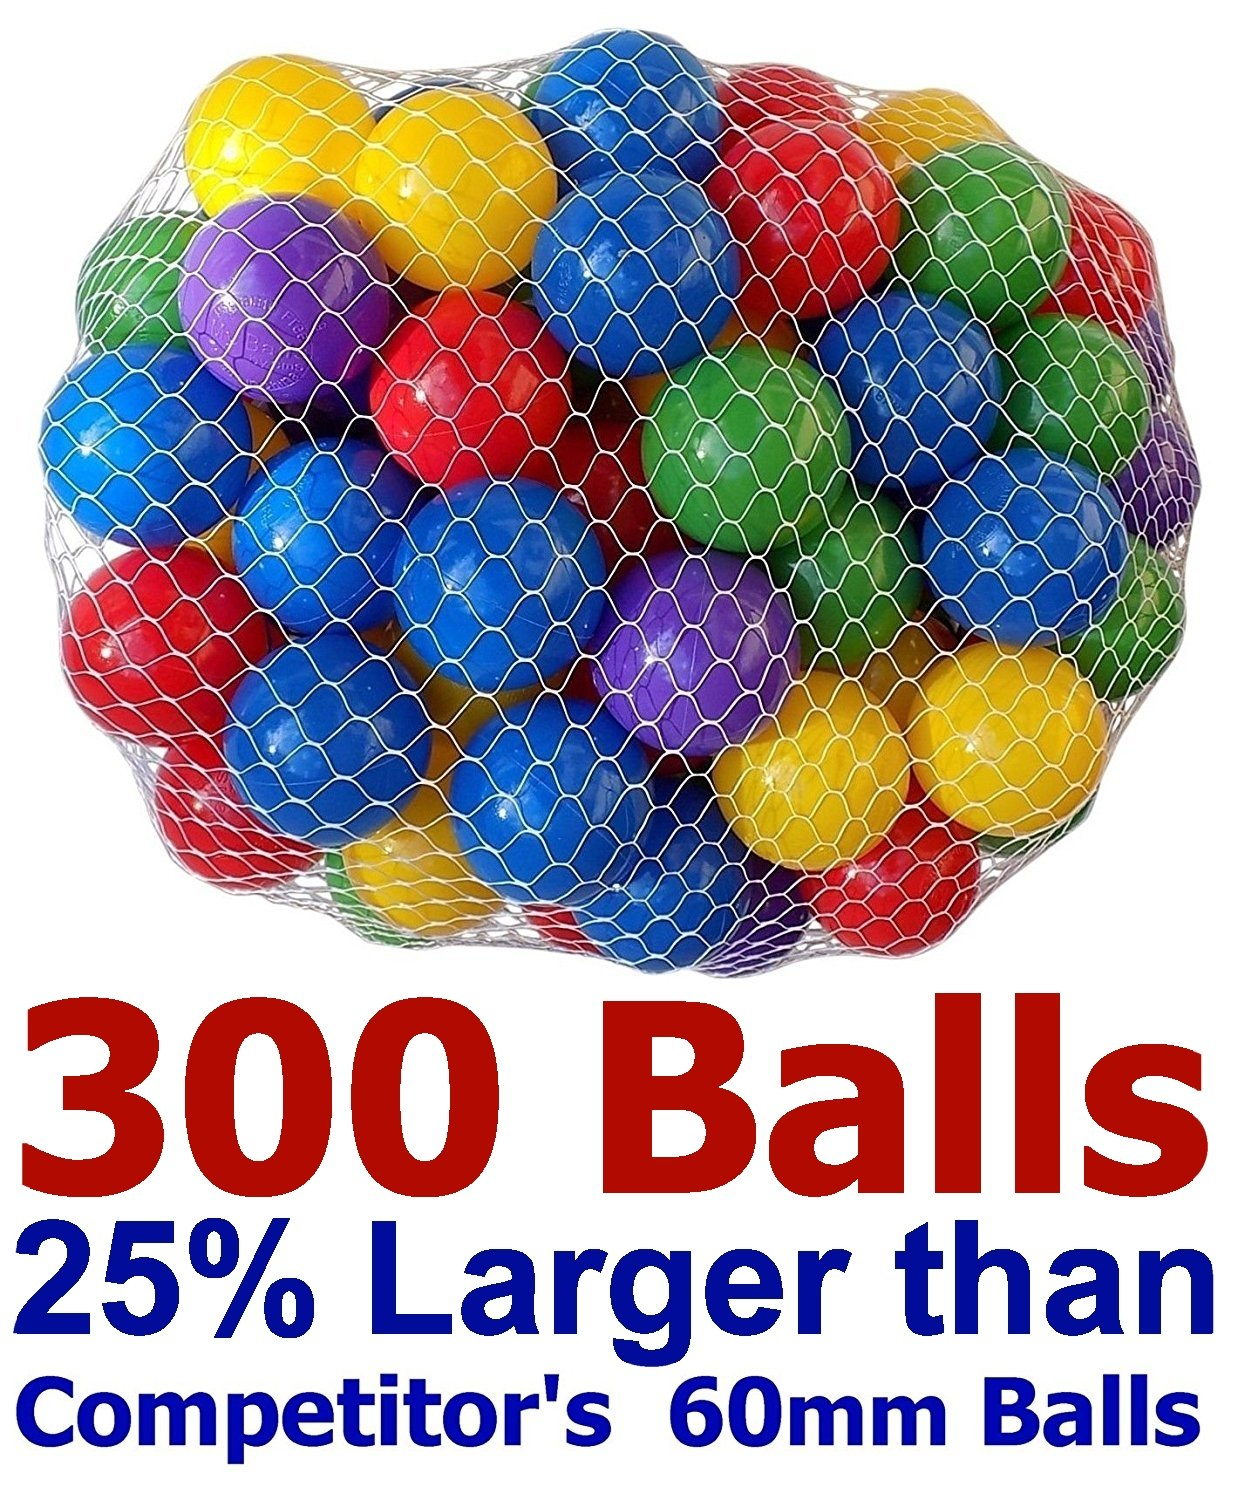 Pack of 300 Large Size 2.5'' Crush-Proof Ball Pit Balls - 5 Colors, Phthalate Free; BPA Free, Non-Toxic, Non-Recycled Plastic (Pack of 300) by My Balls